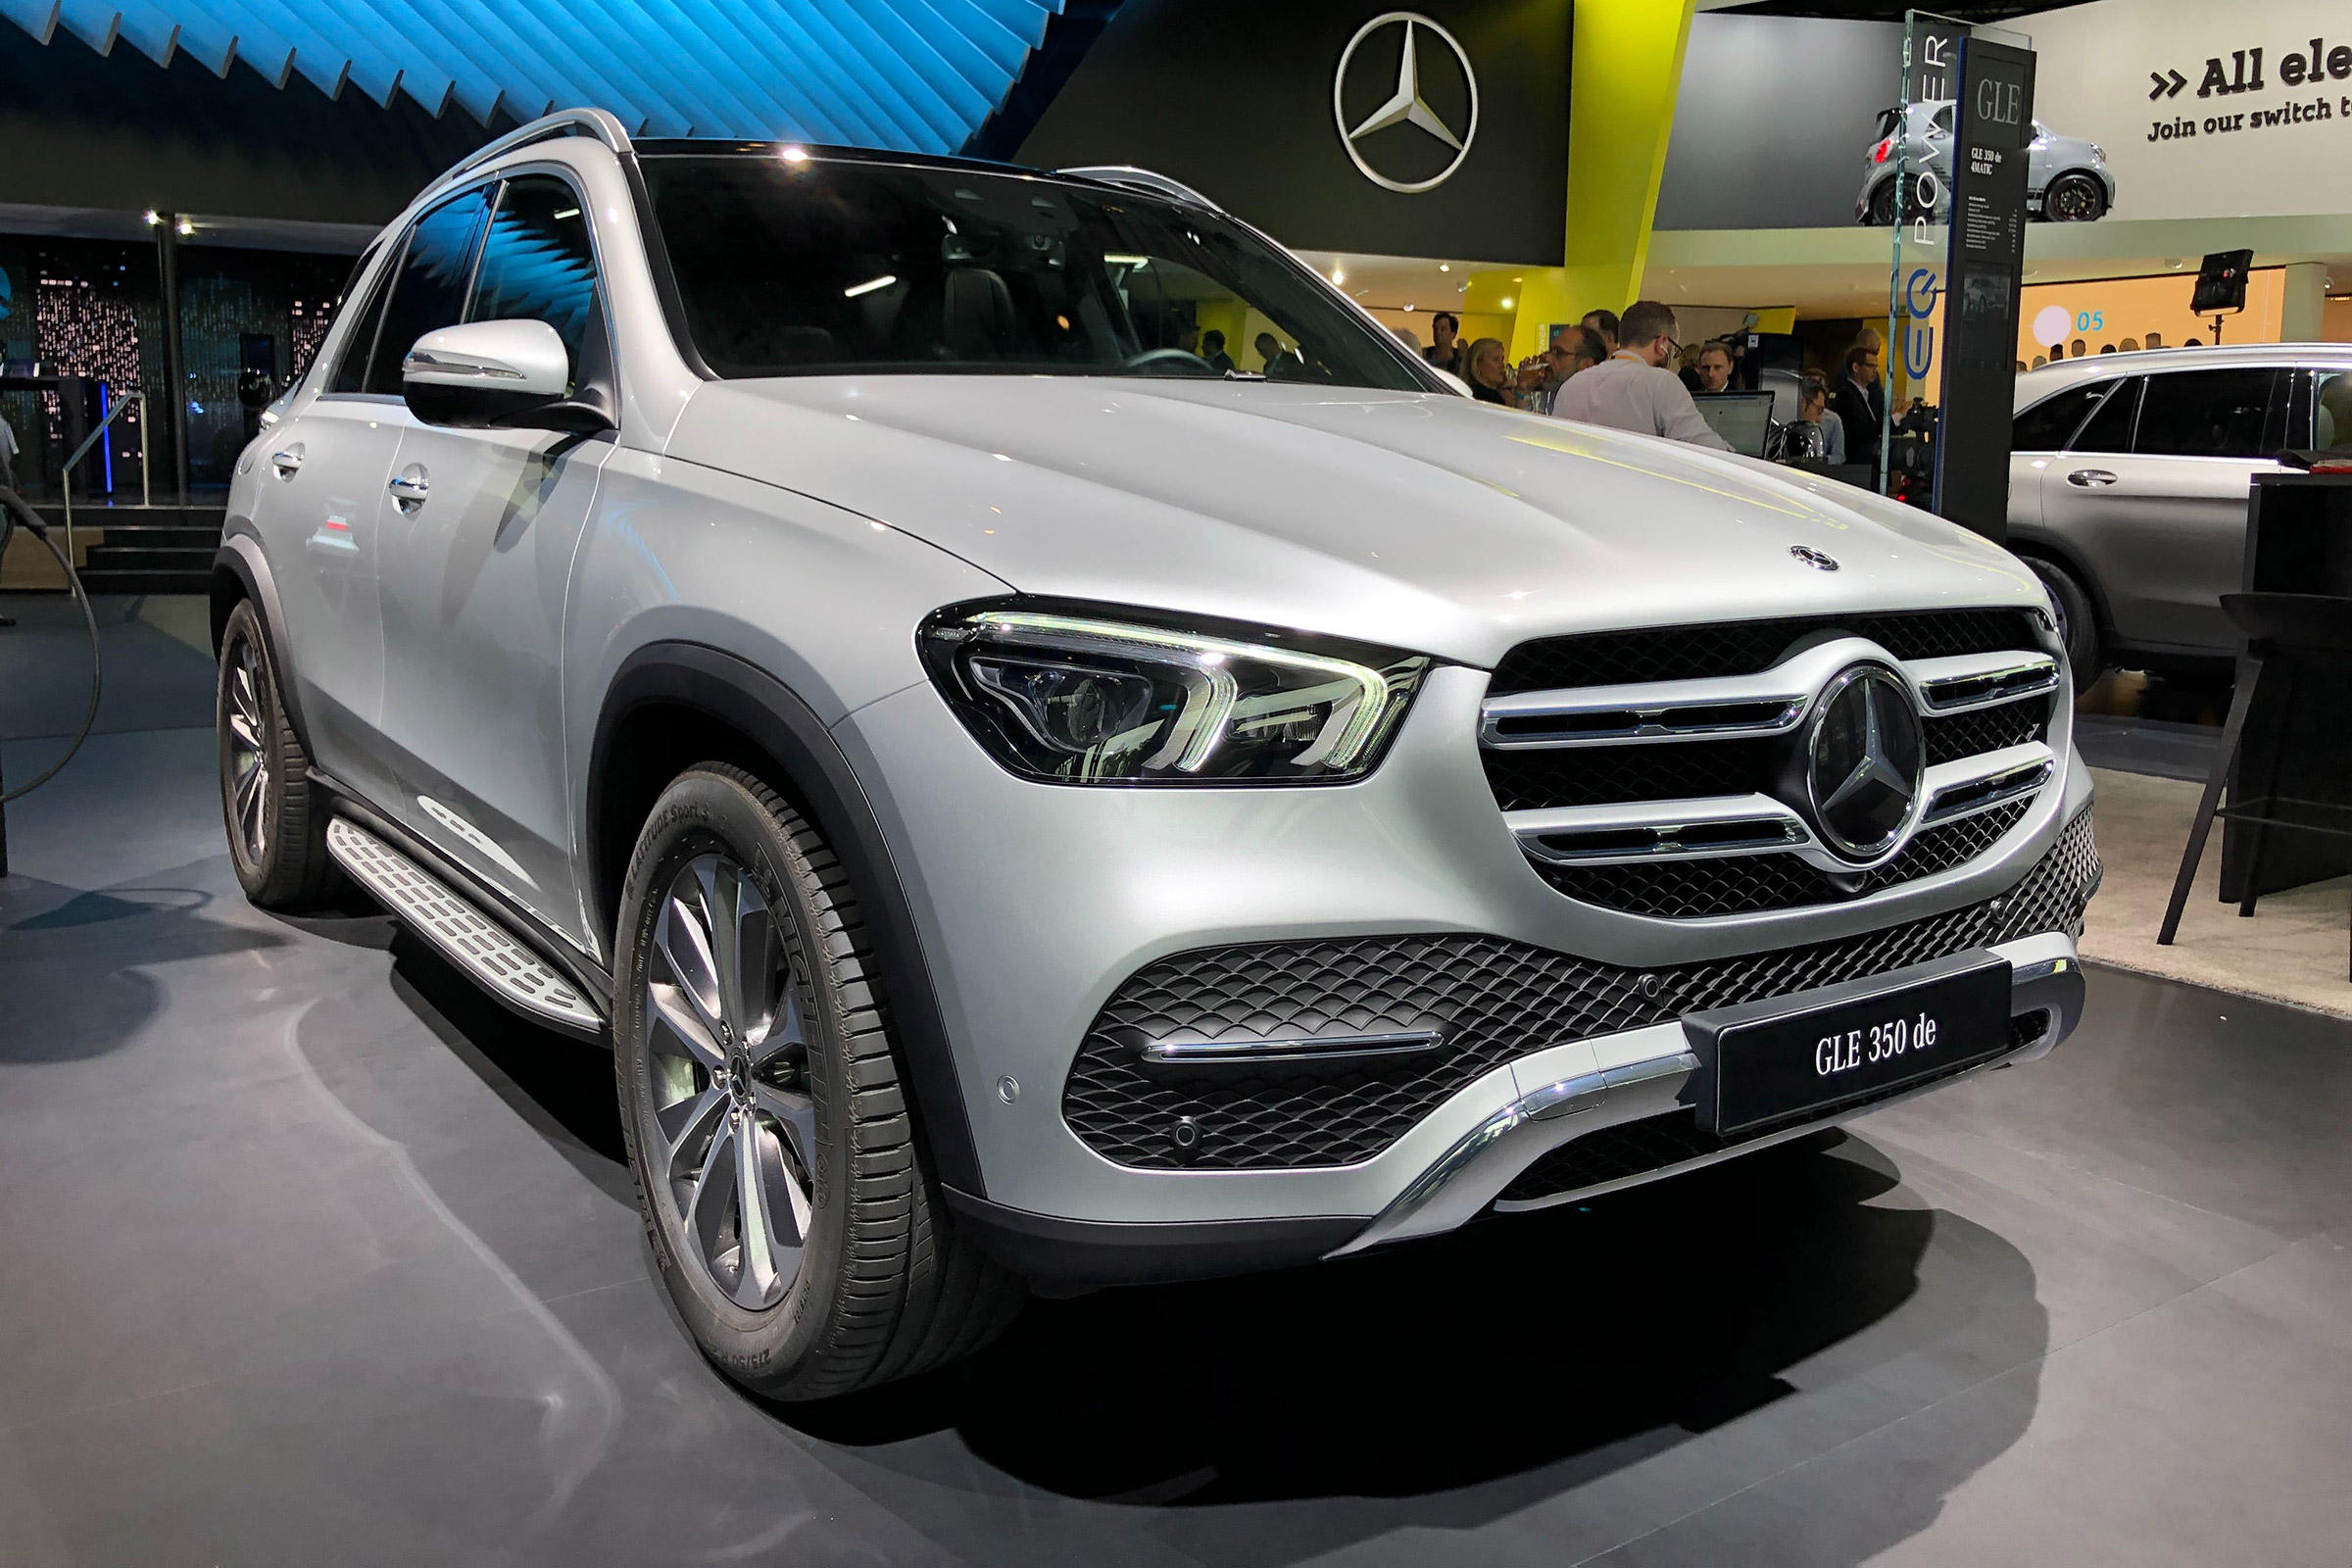 New Mercedes GLE 350 de diesel plug-in to start from over ...